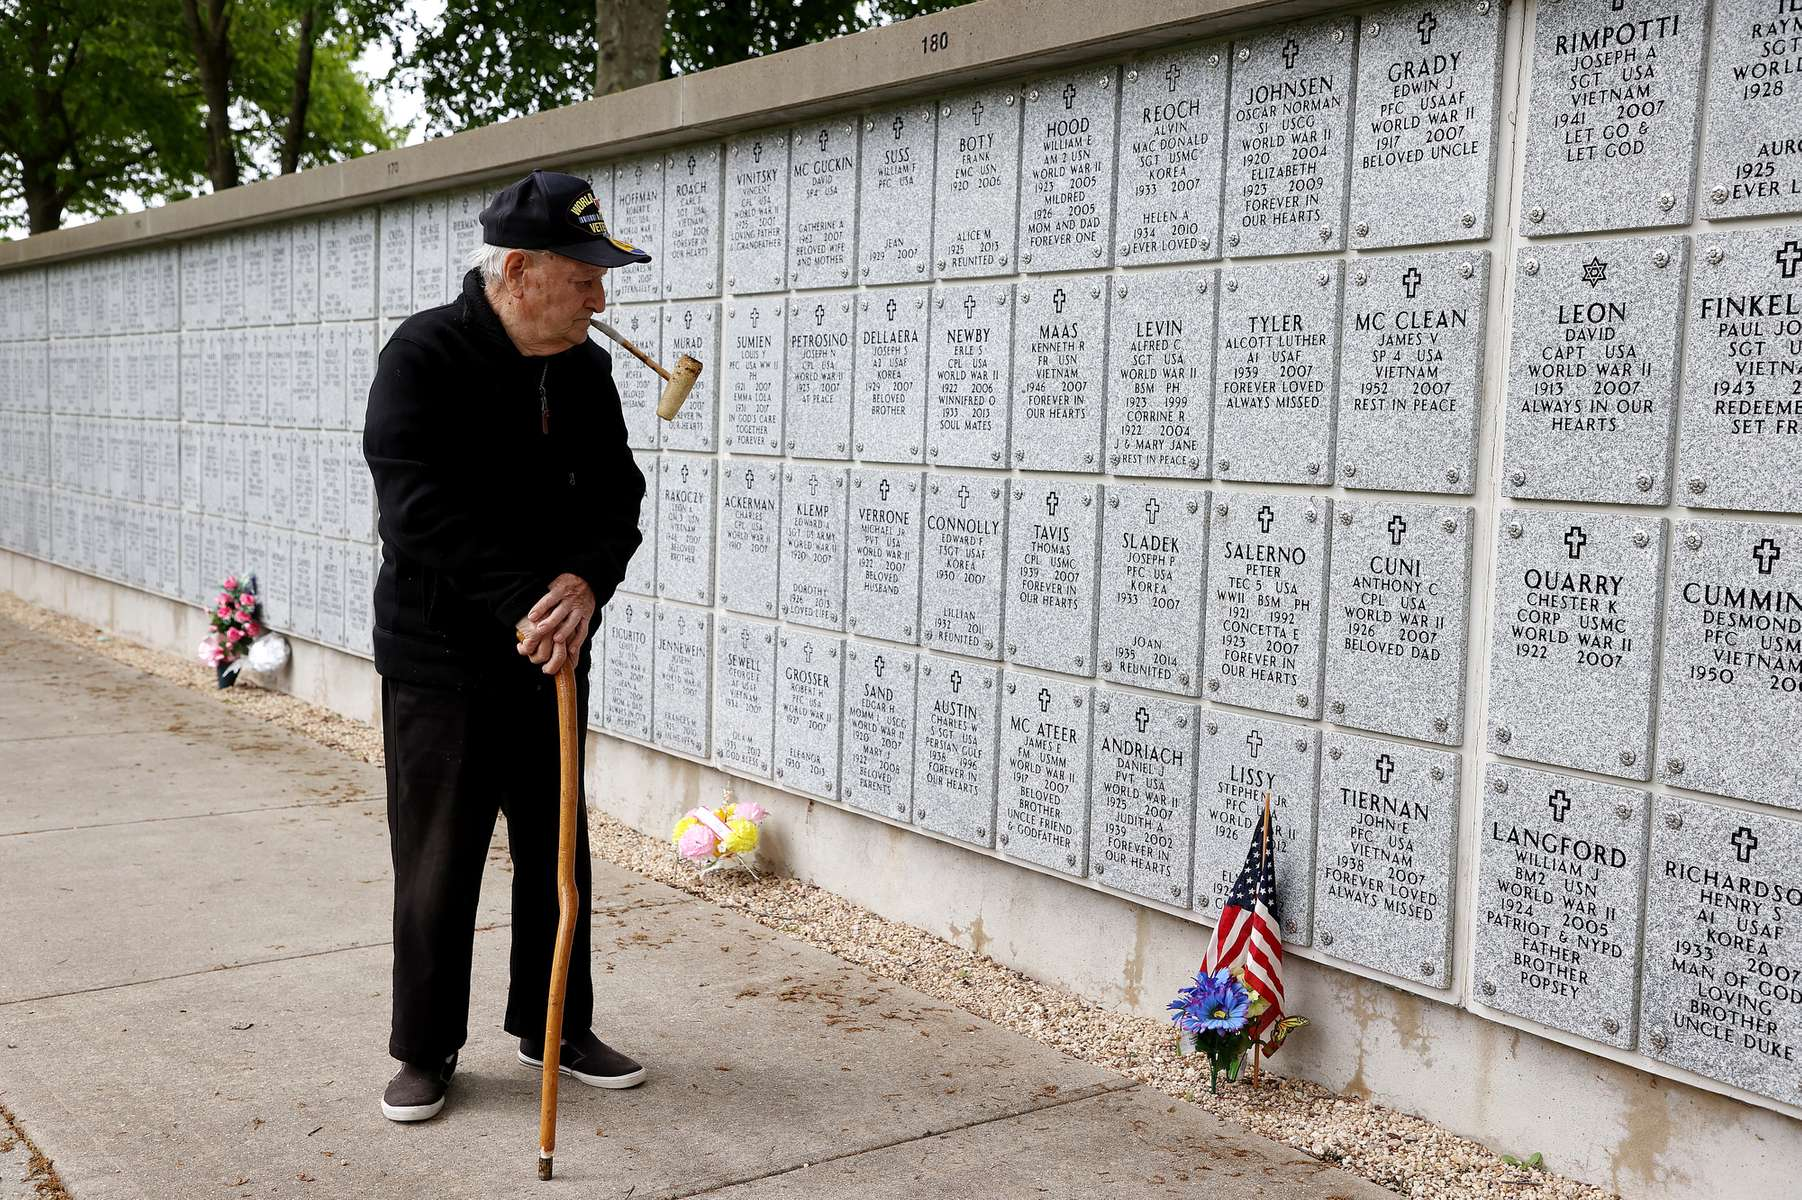 World War II Army Veteran Angelo Salerno visits the gravesite of his brother Peter Salerno who also served in World War II at Long Island National Cemetery on May 24, 2020 in Farmingdale, New York.  Health guidelines due to the coronavirus pandemic is expected to have a negative effect on those coming to pay their respects to veterans who lost their lives defending the country.